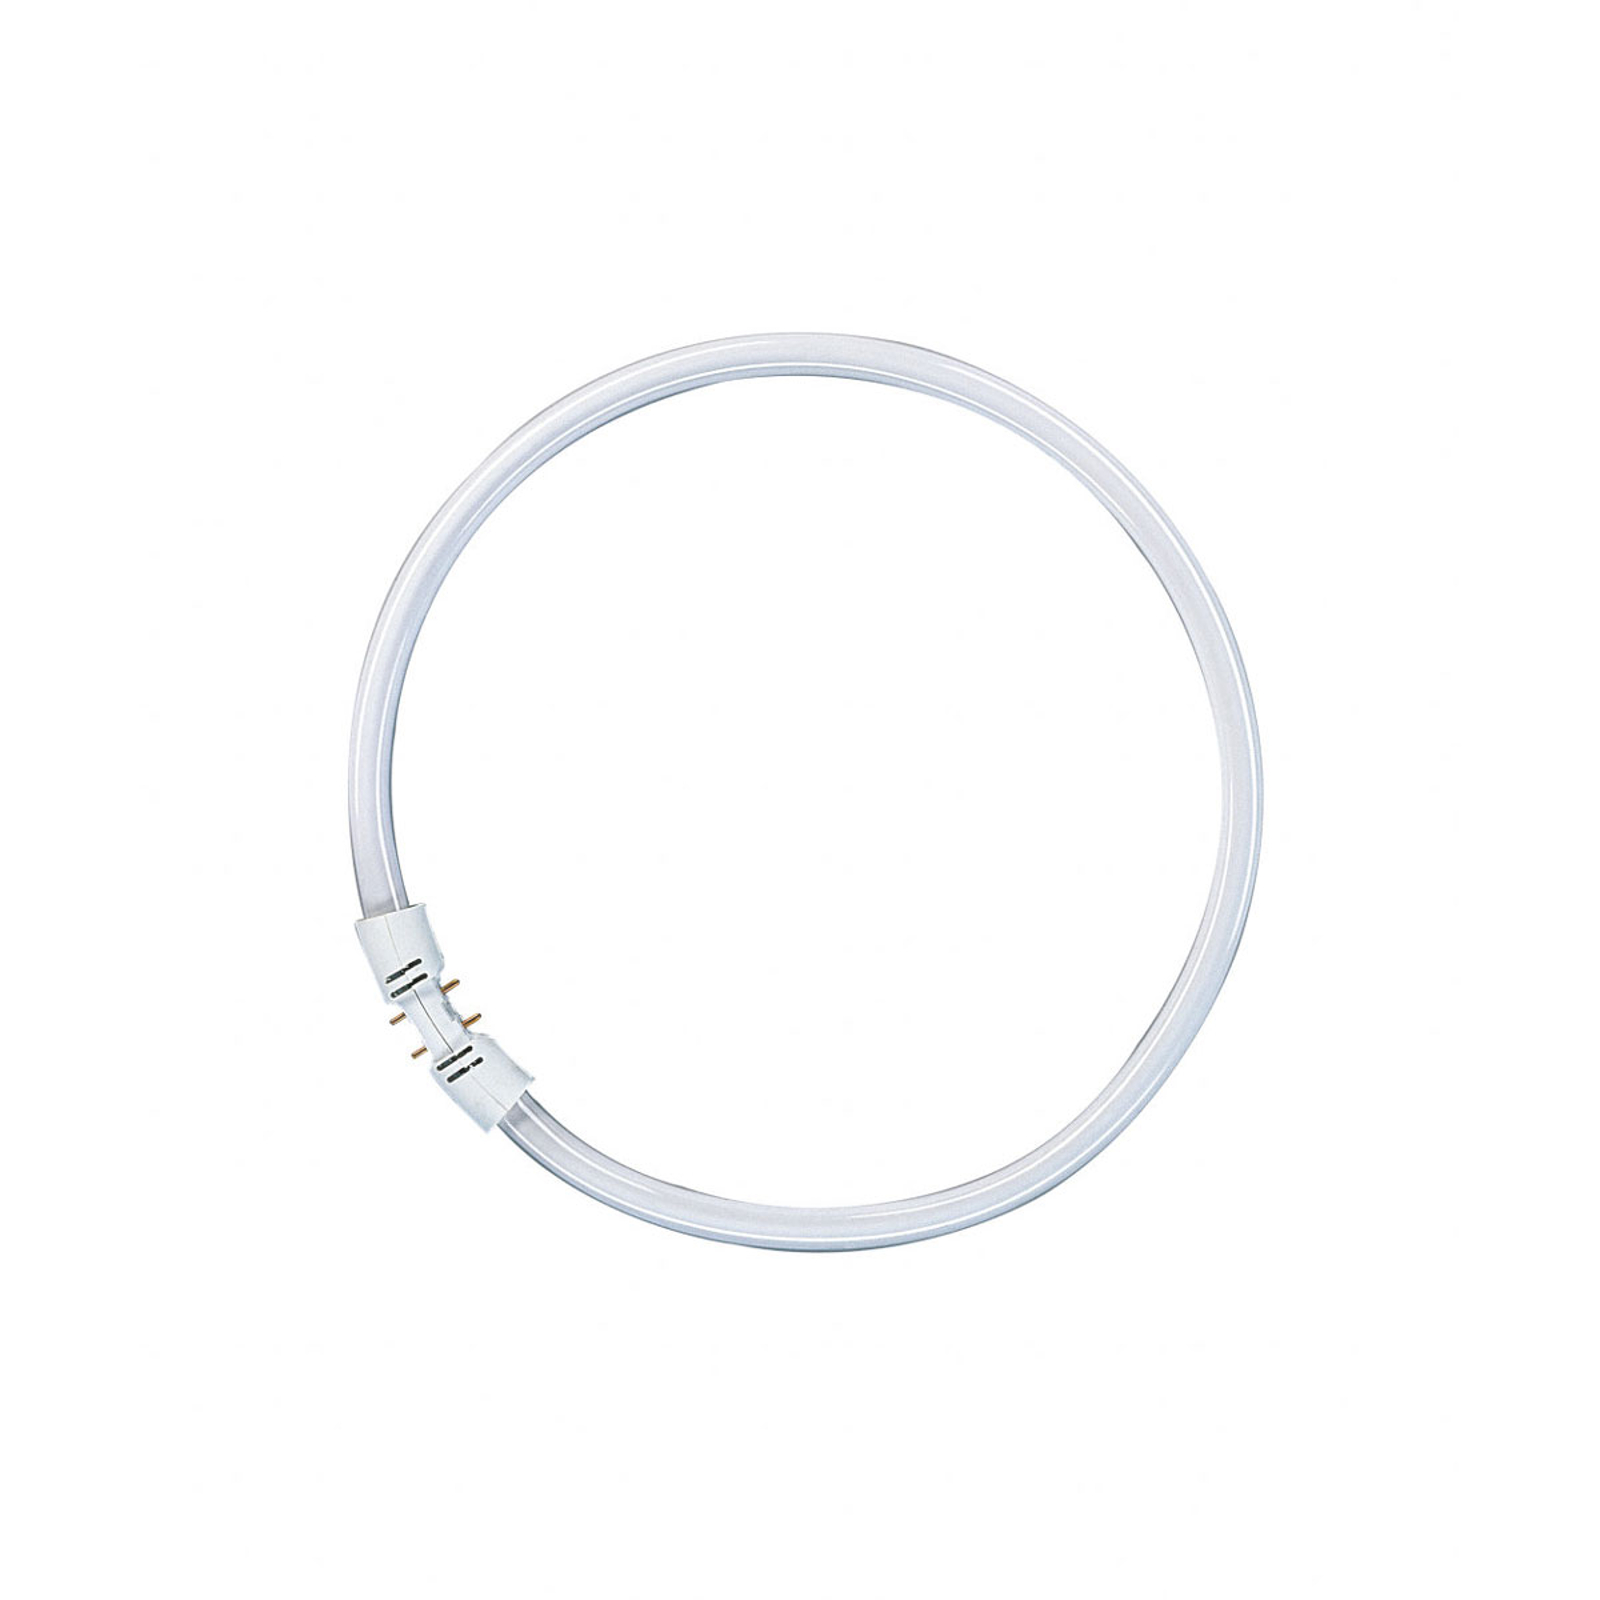 2Gx13 LUMILUX T5 Ring-Leuchtstofflampe 22W 827